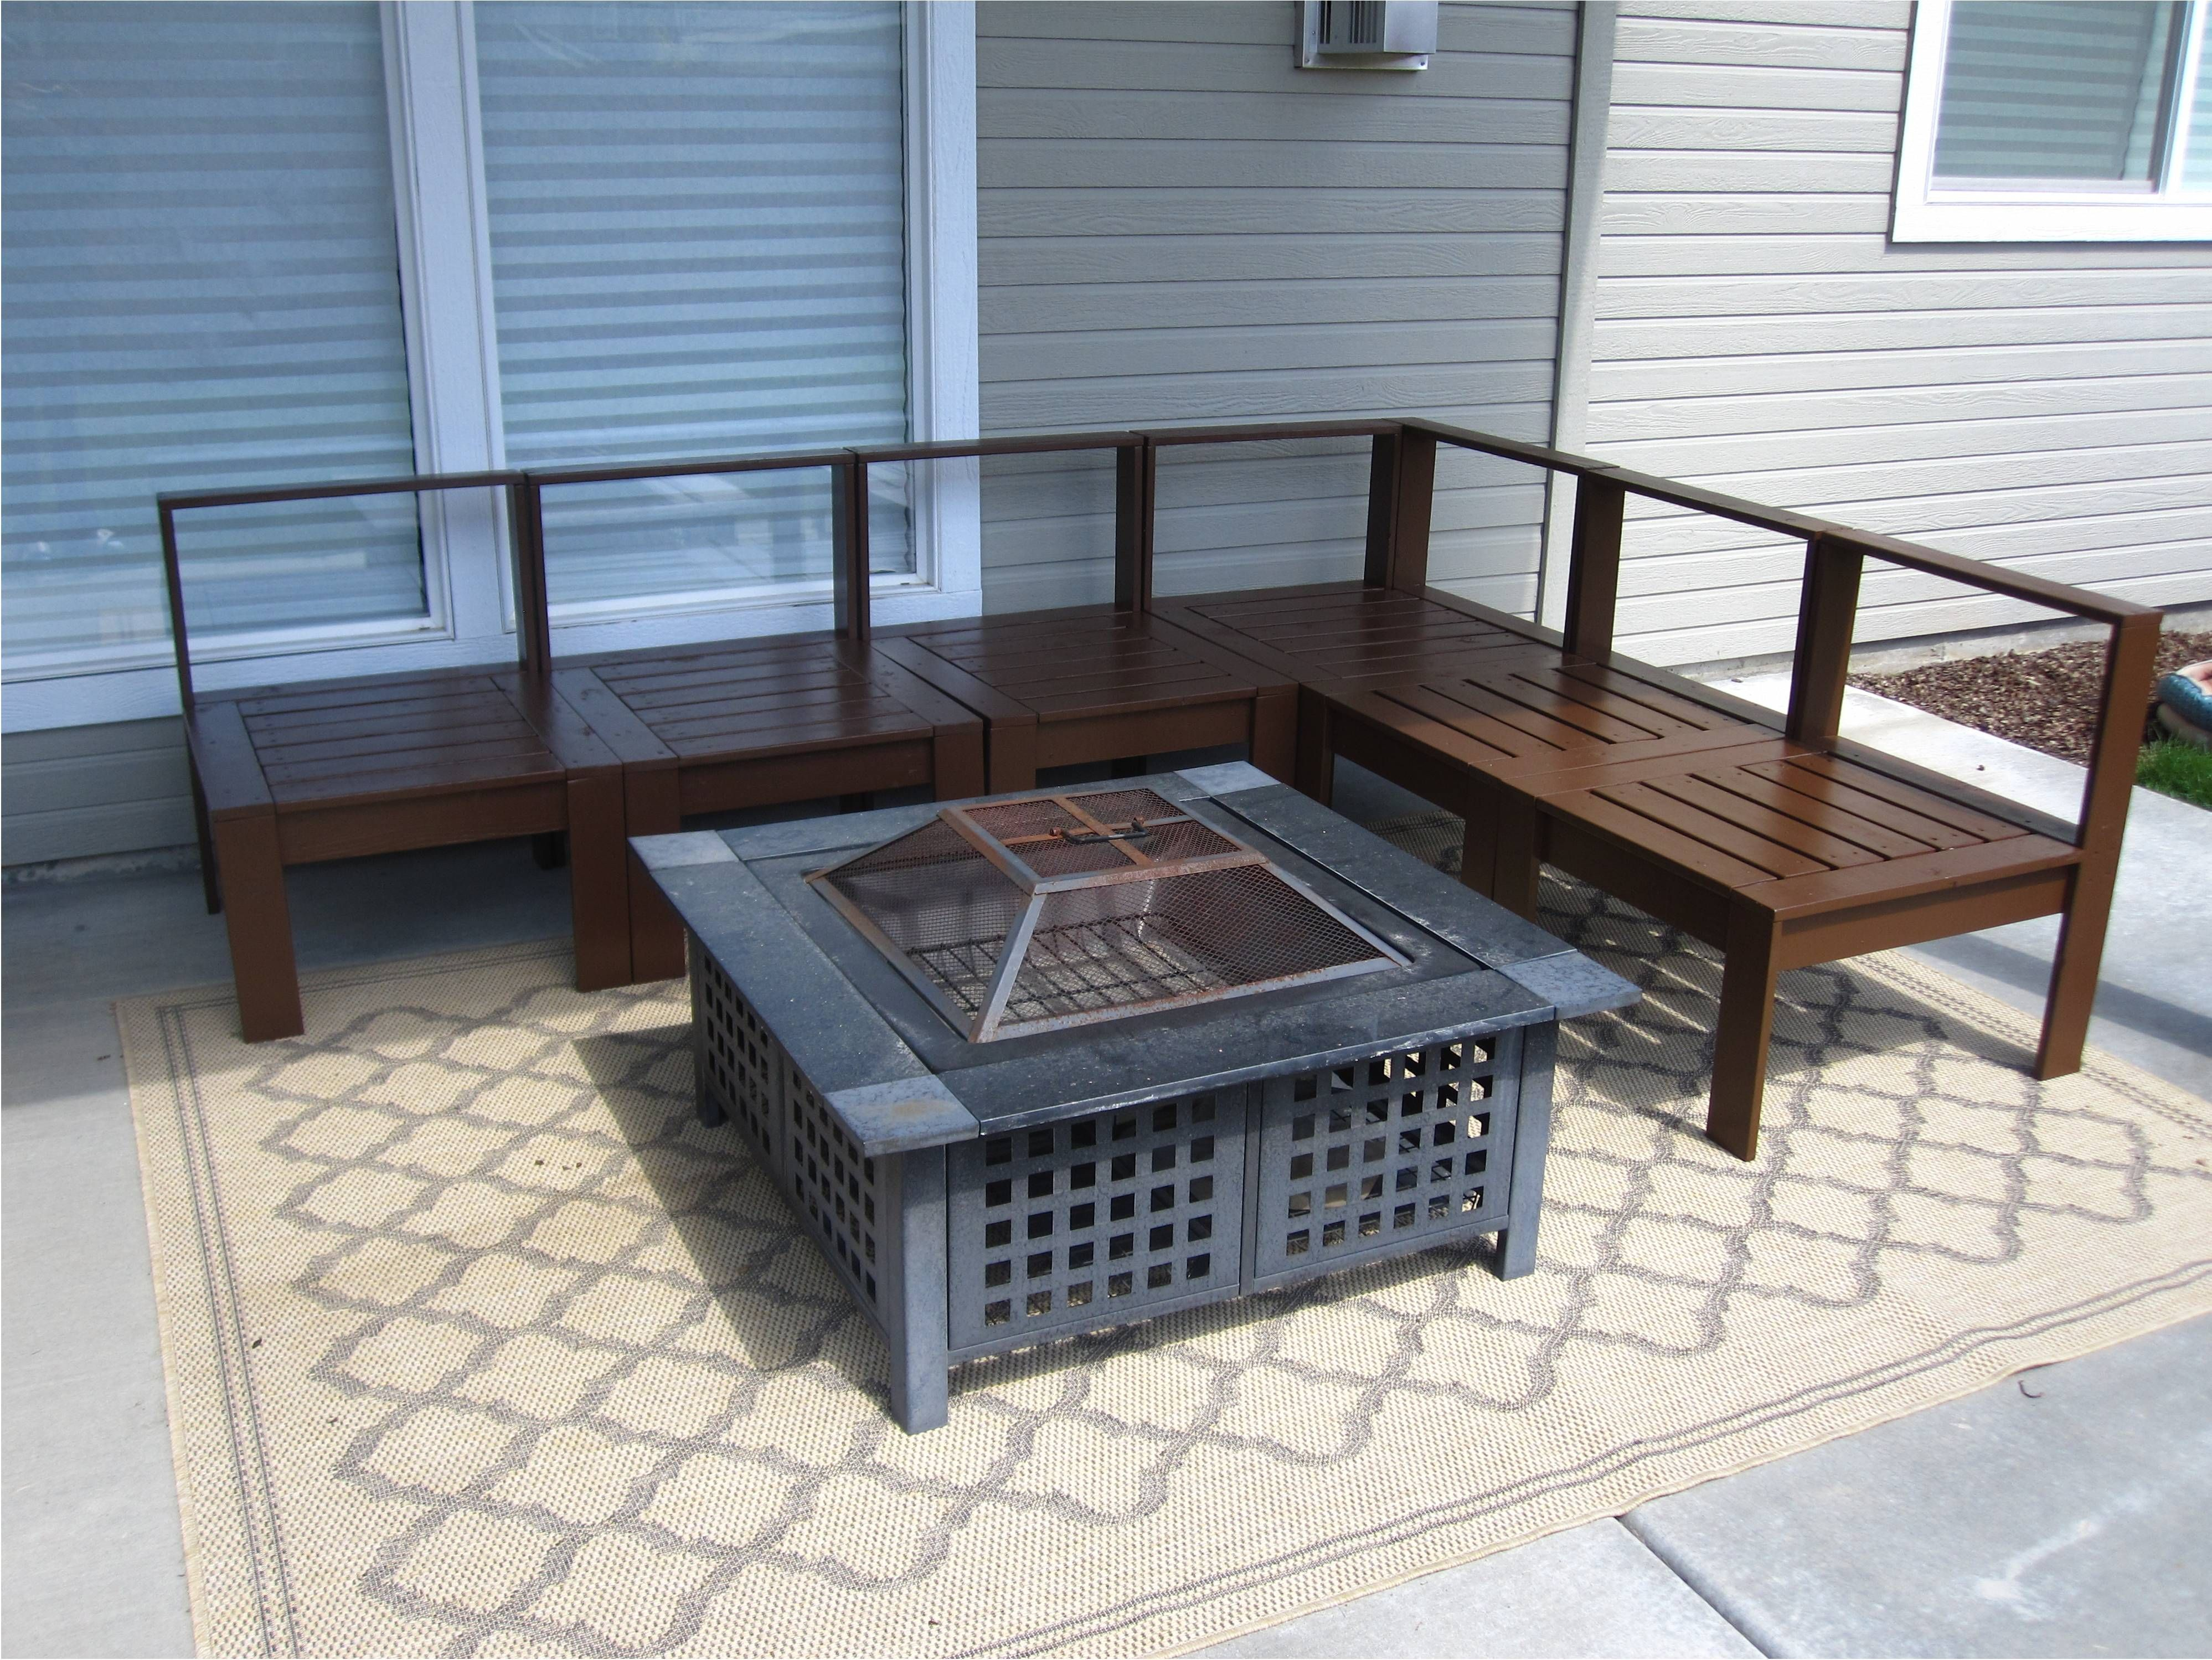 Outdoor Sectional Do It Yourself Home Projects from Ana White